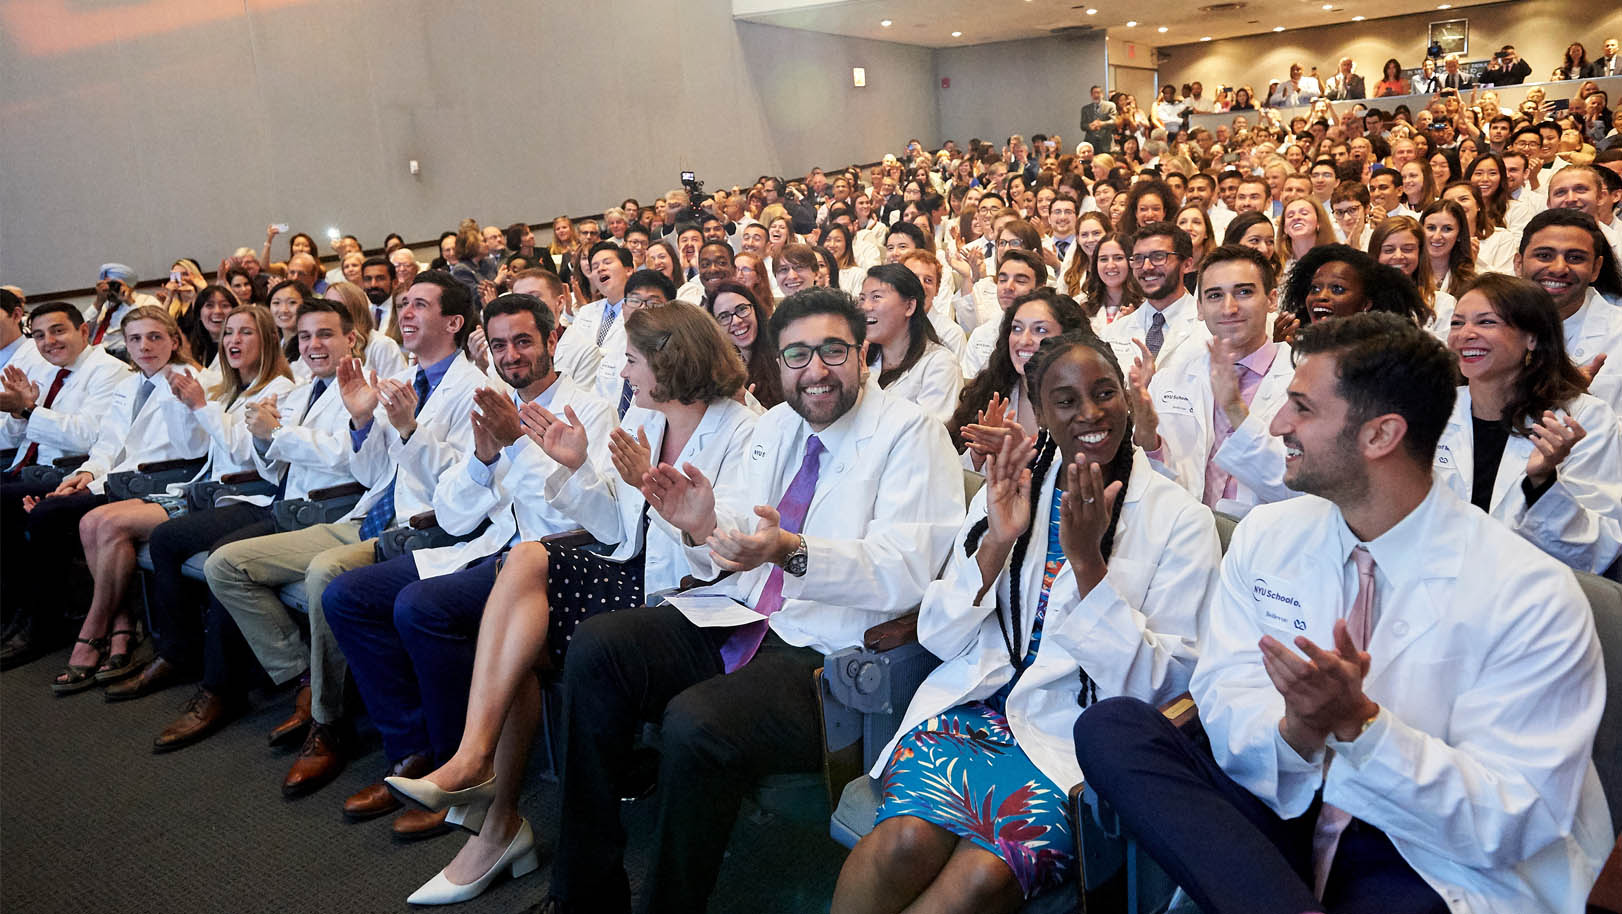 The next generation of leaders in medicine at NYU School of Medicine.